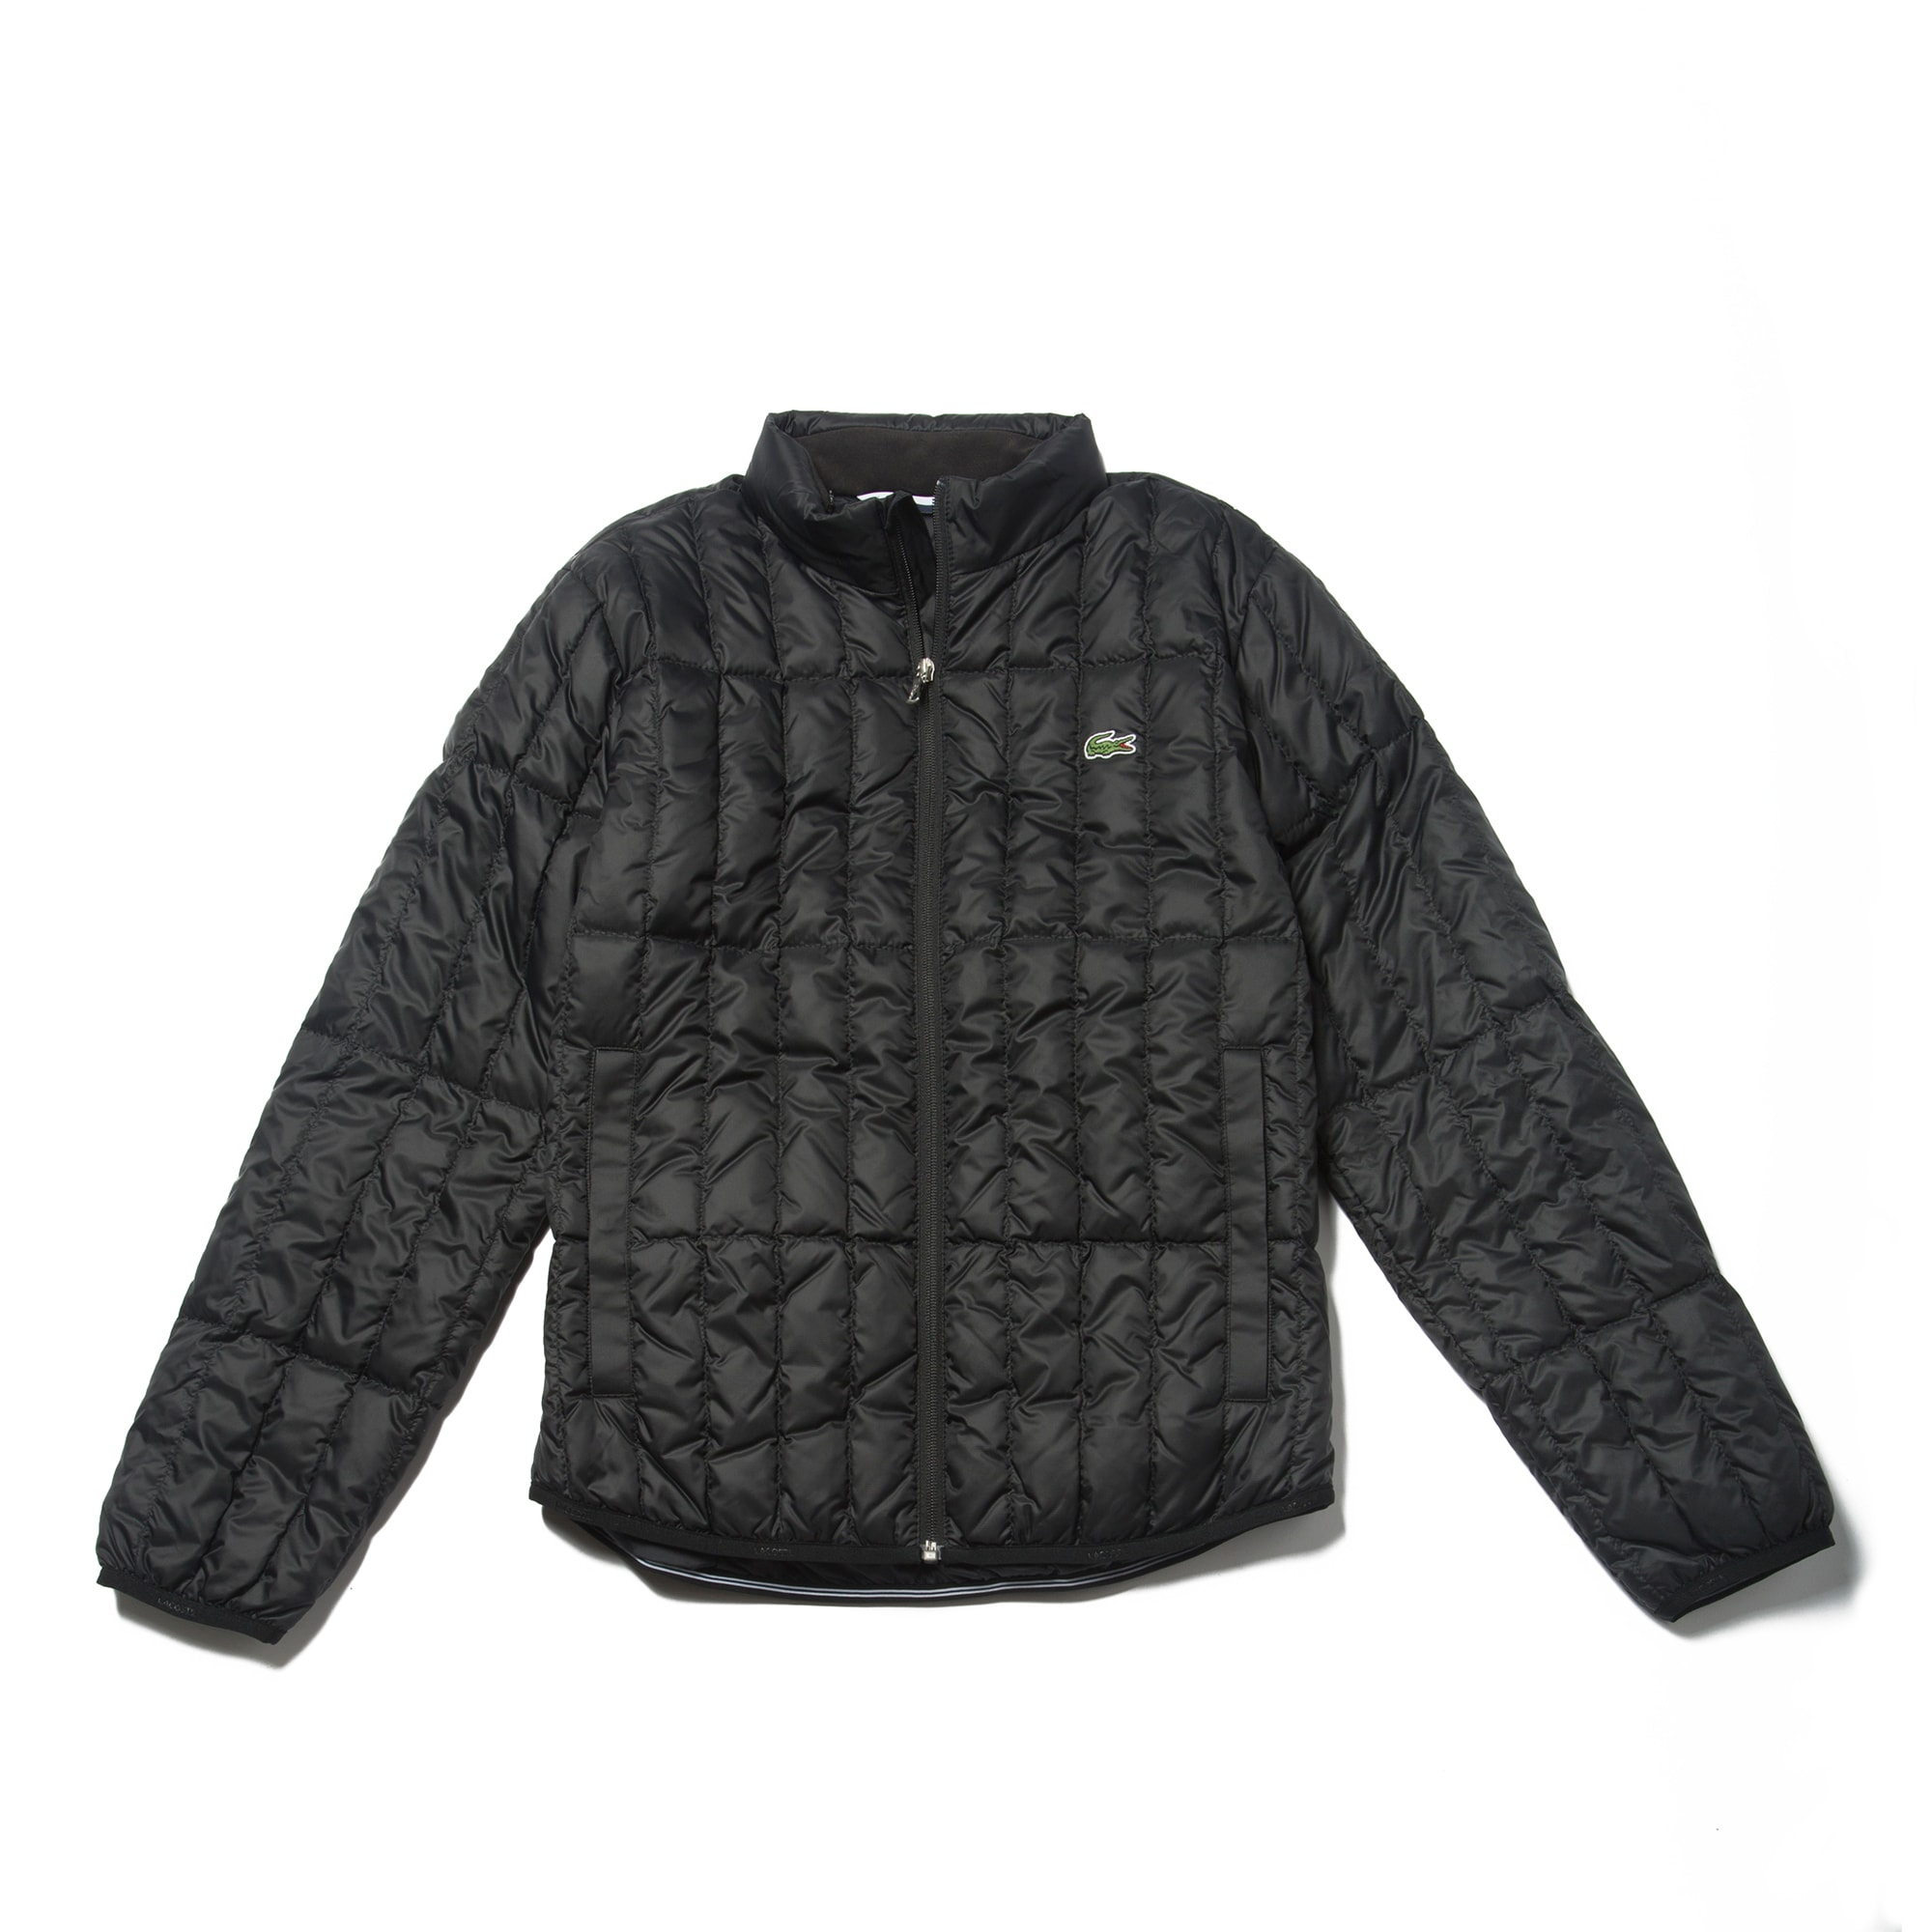 Men's Lightweight Built-in Hood Quilted Down Packable Jacket